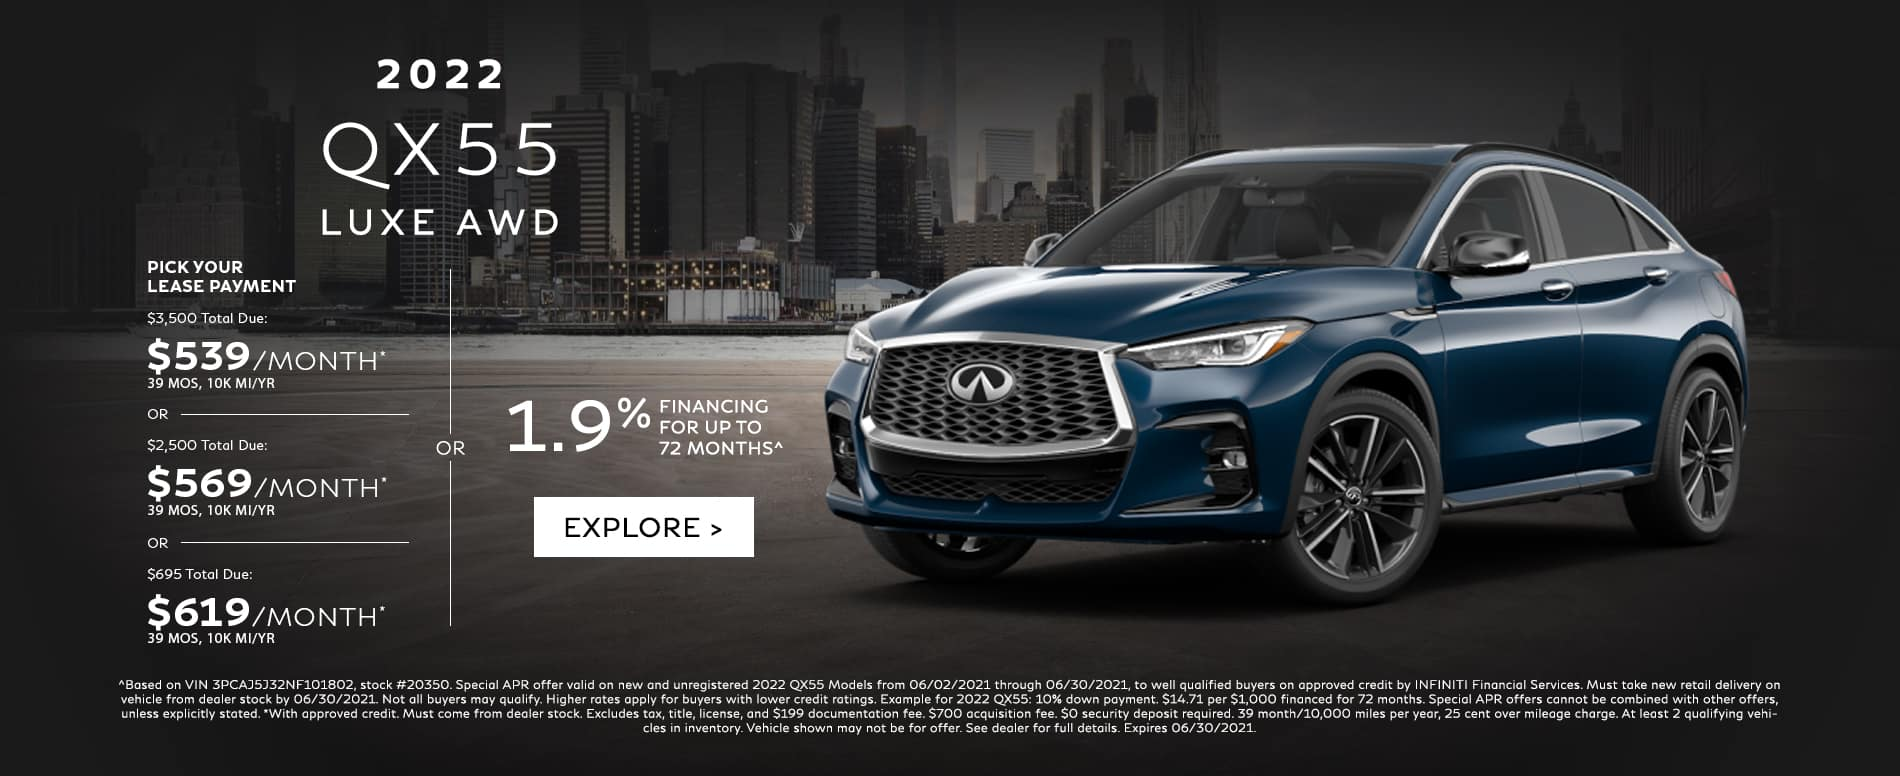 Choose your payment on the all-new 2022 QX55. See dealer for details.